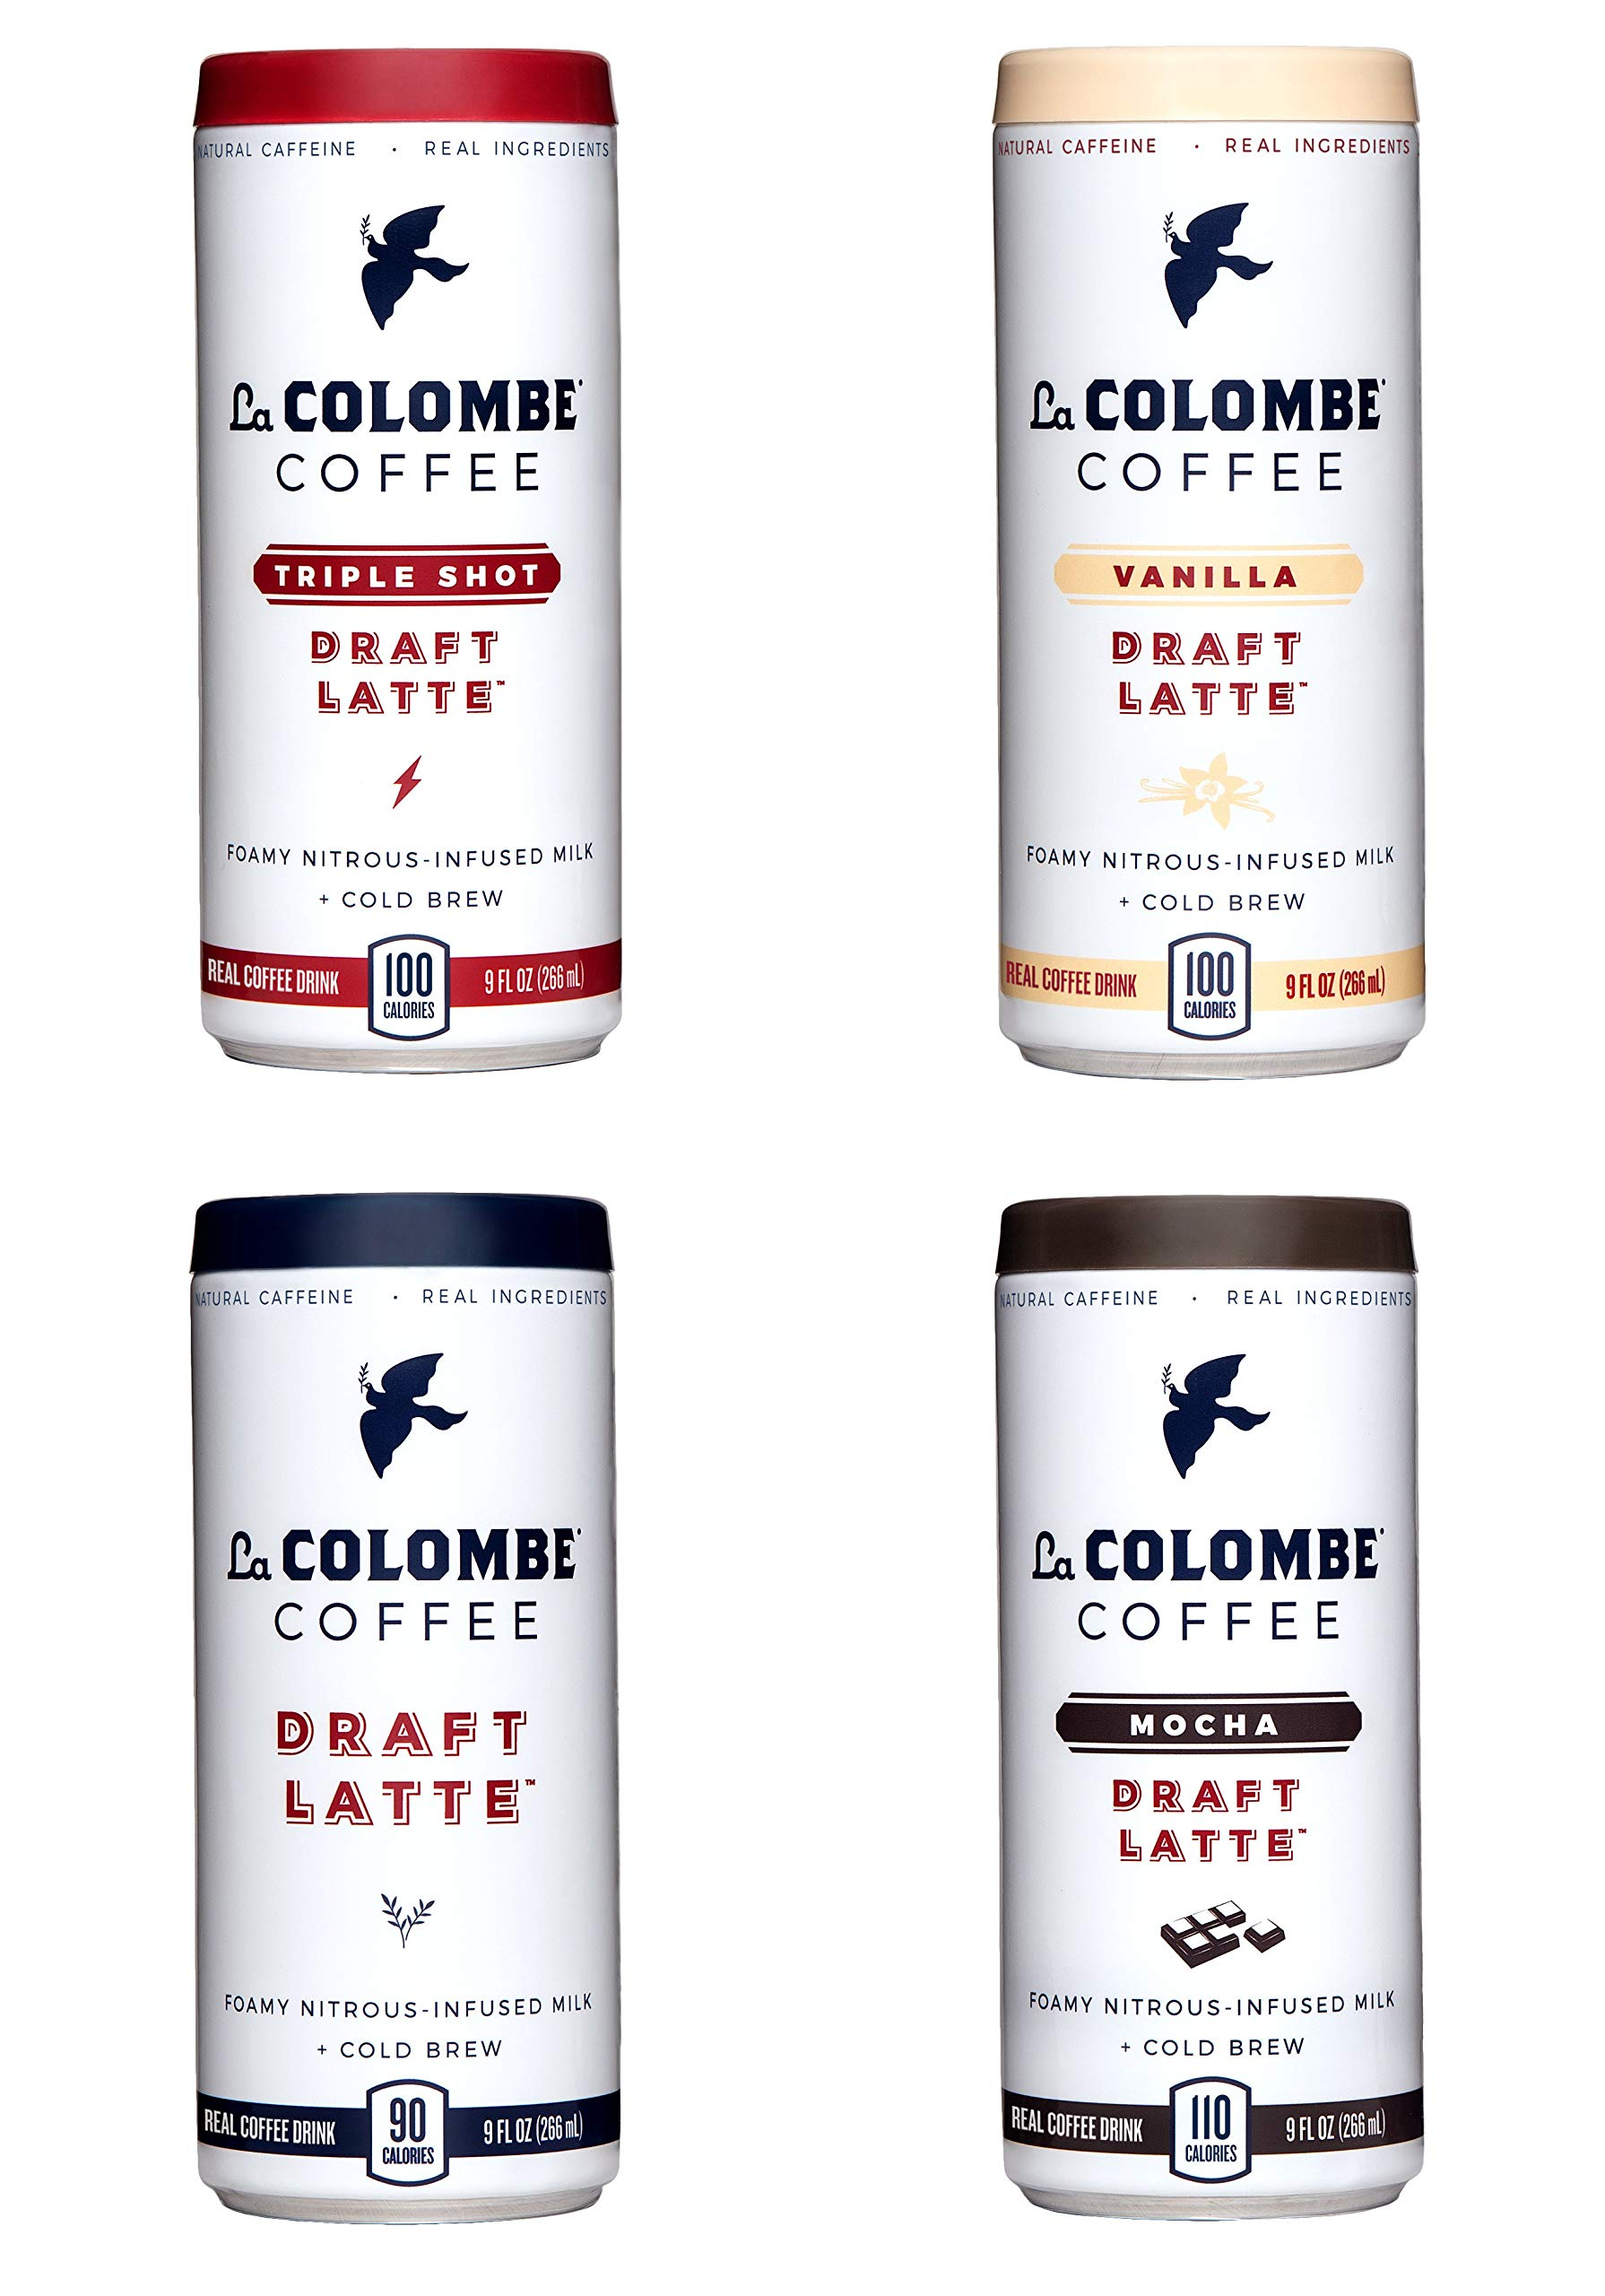 La Colombe Draft Latte Variety Pack - 9 Fluid Ounce, 16 Count - Core 4 Flavors: Triple, Vanilla, Draft, Mocha - Made With Real Ingredients - Grab And Go Coffee